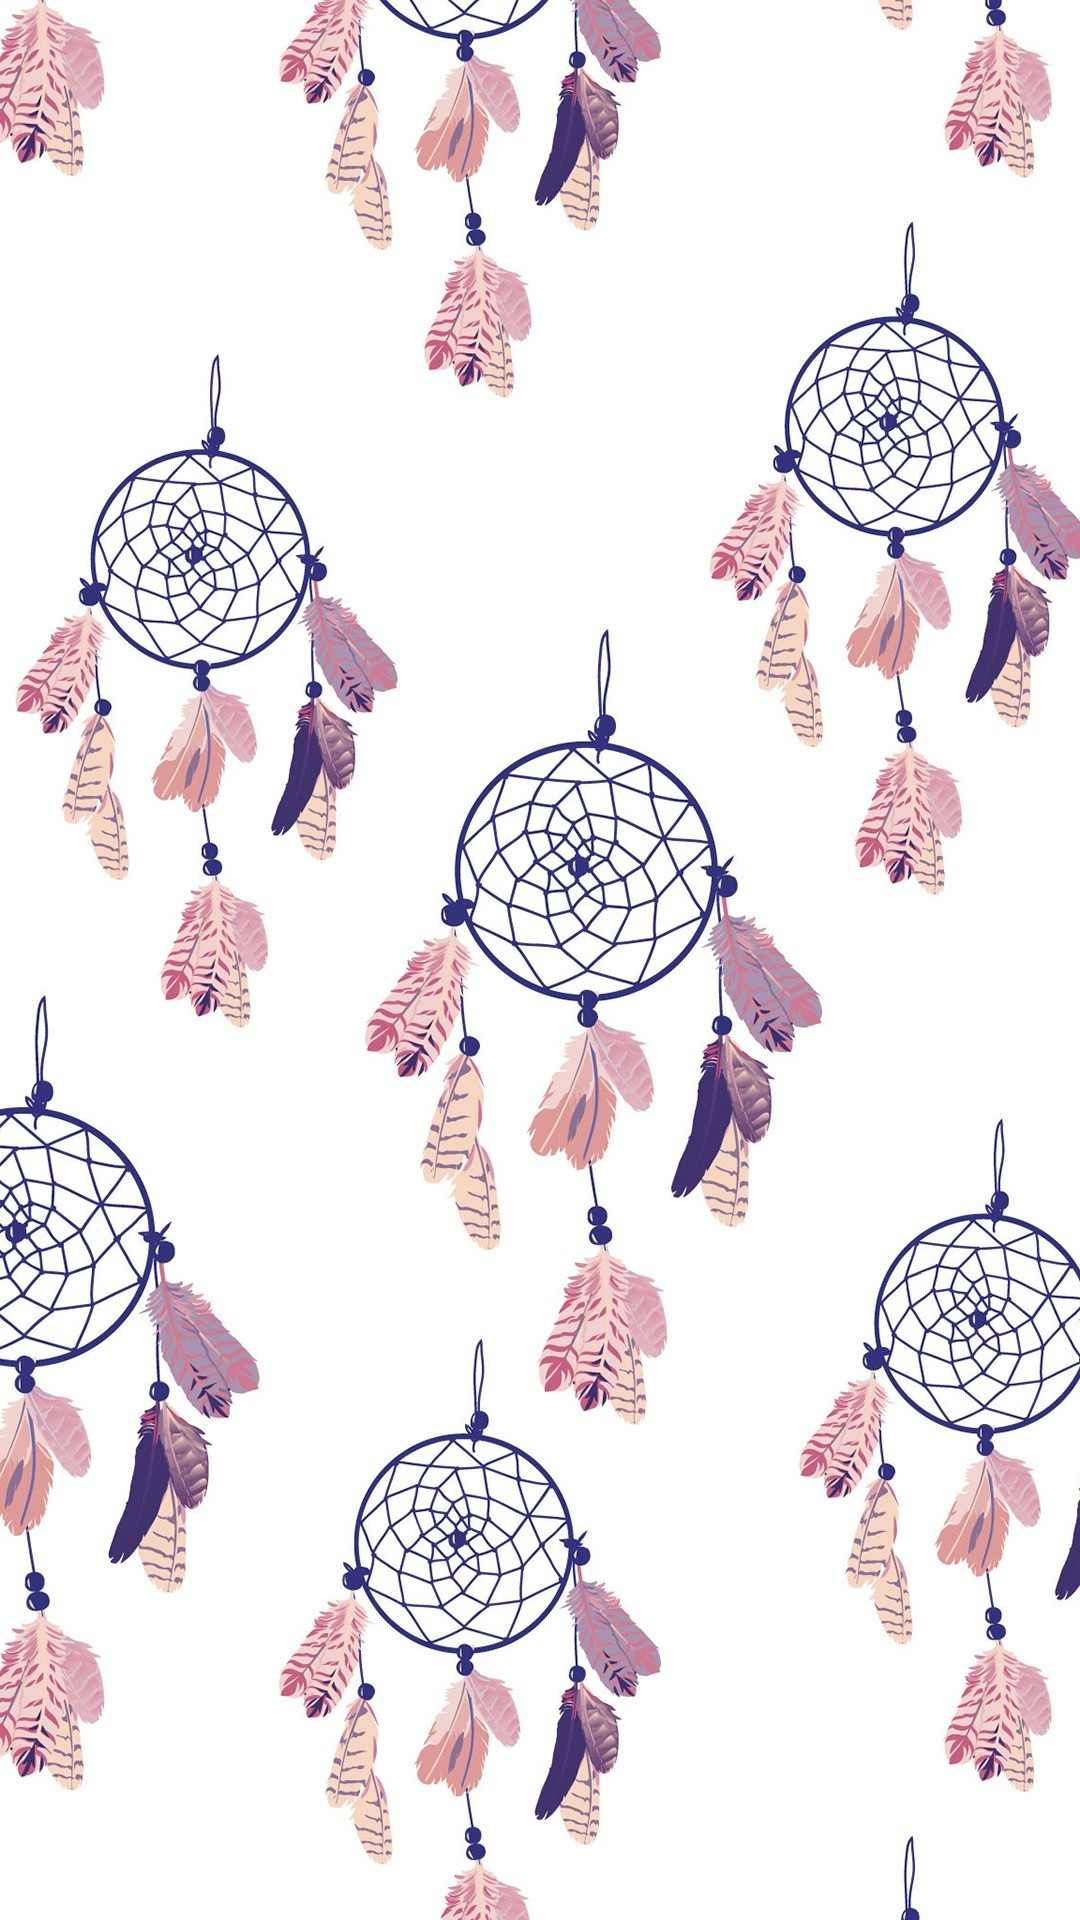 Dreamcatchers, Phone Wallpapers, Iphone Backgrounds, Ios 7, Itunes, Apple,  Girly, Layout, Wallpapers